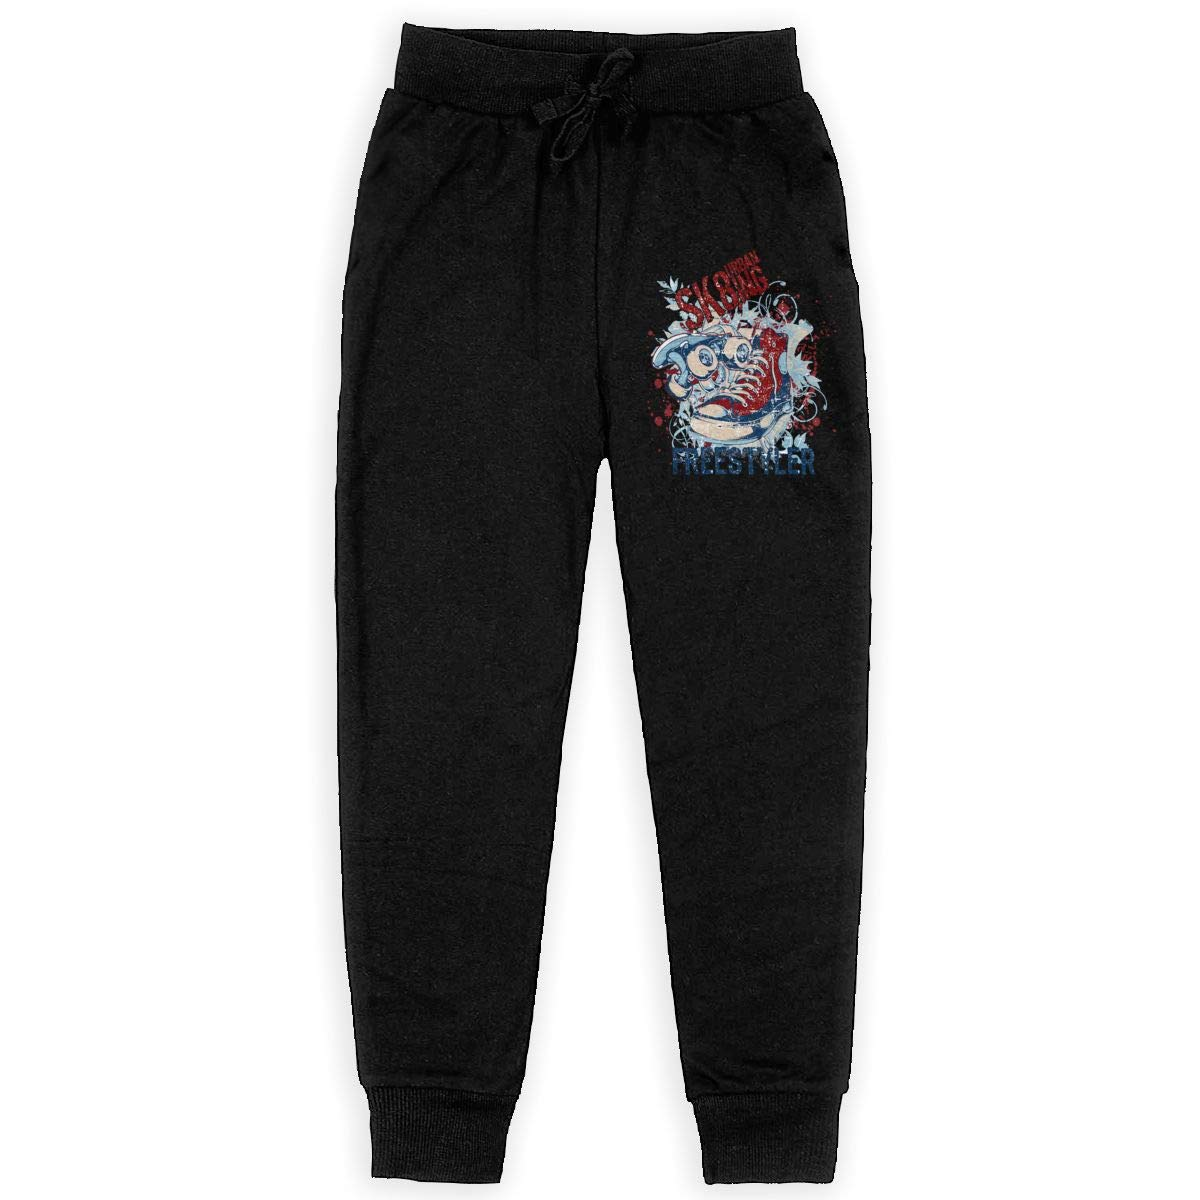 Xinding Youth Casual Training Sweatpants Freestyler Adjustable Waist Trousers with Pocket